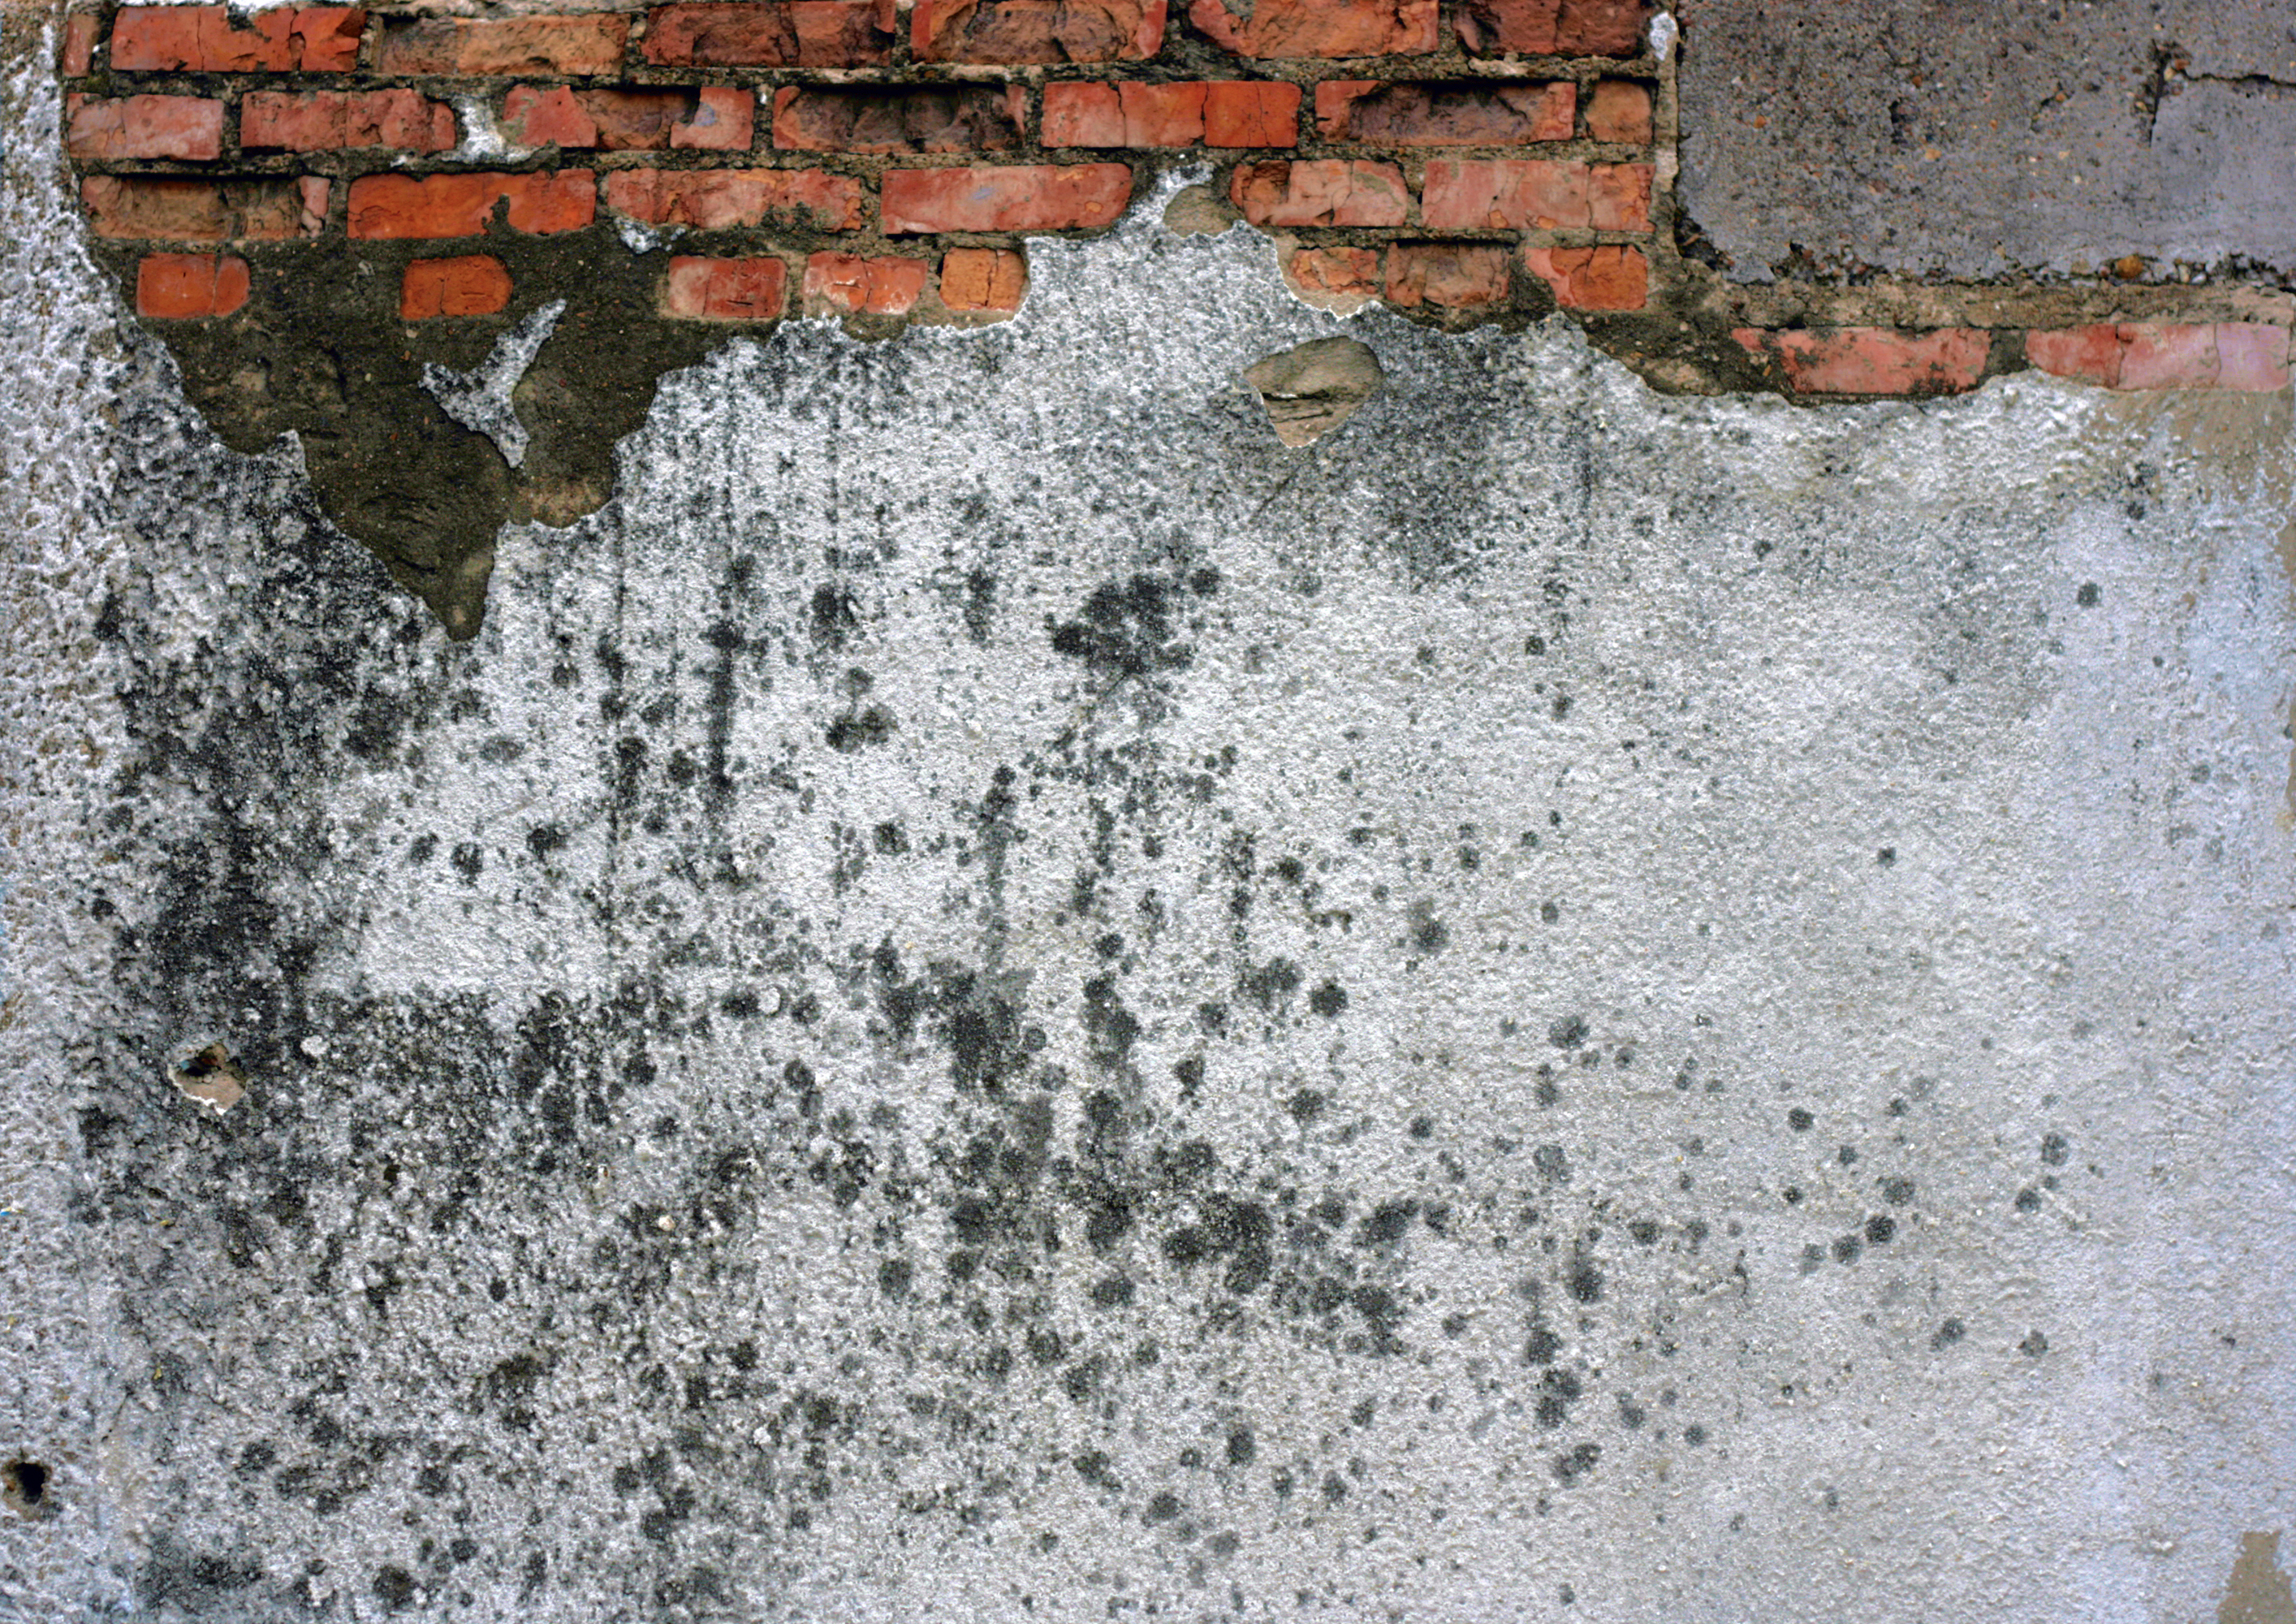 Wall Texture, Close-up, Concrete, Dirty, Exterior, HQ Photo